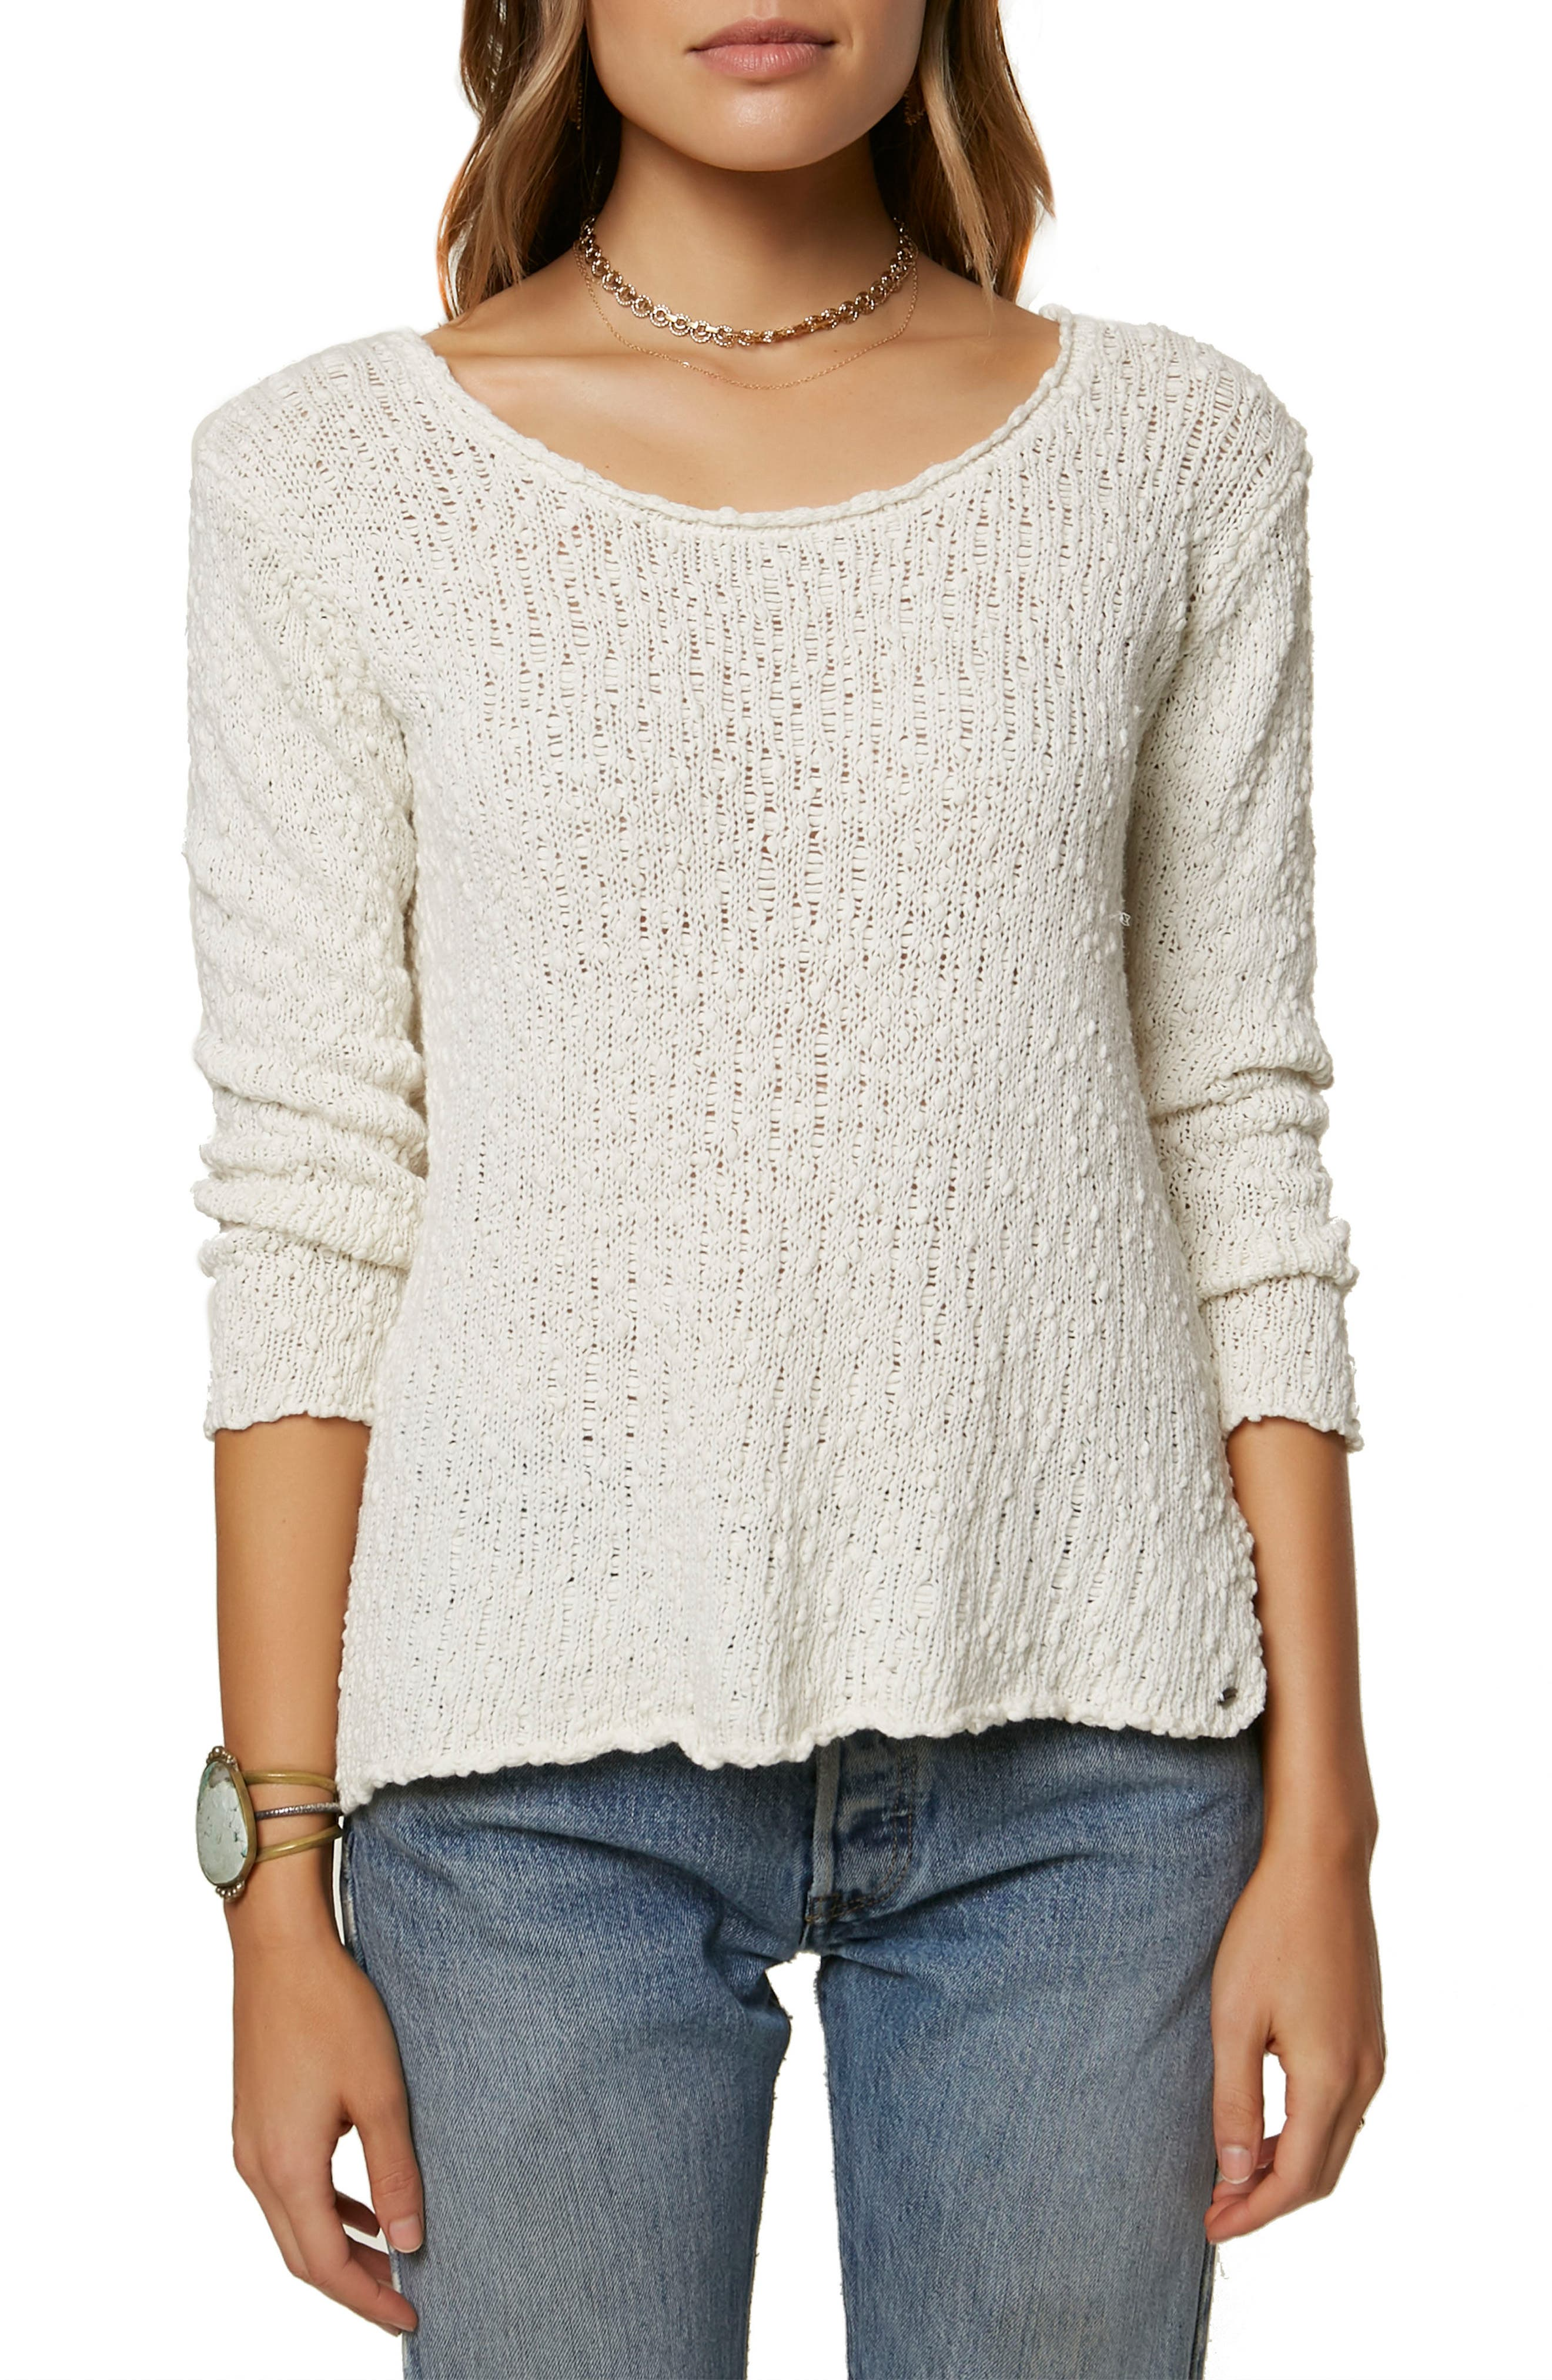 Rocha Pullover Sweater,                             Main thumbnail 1, color,                             Naked